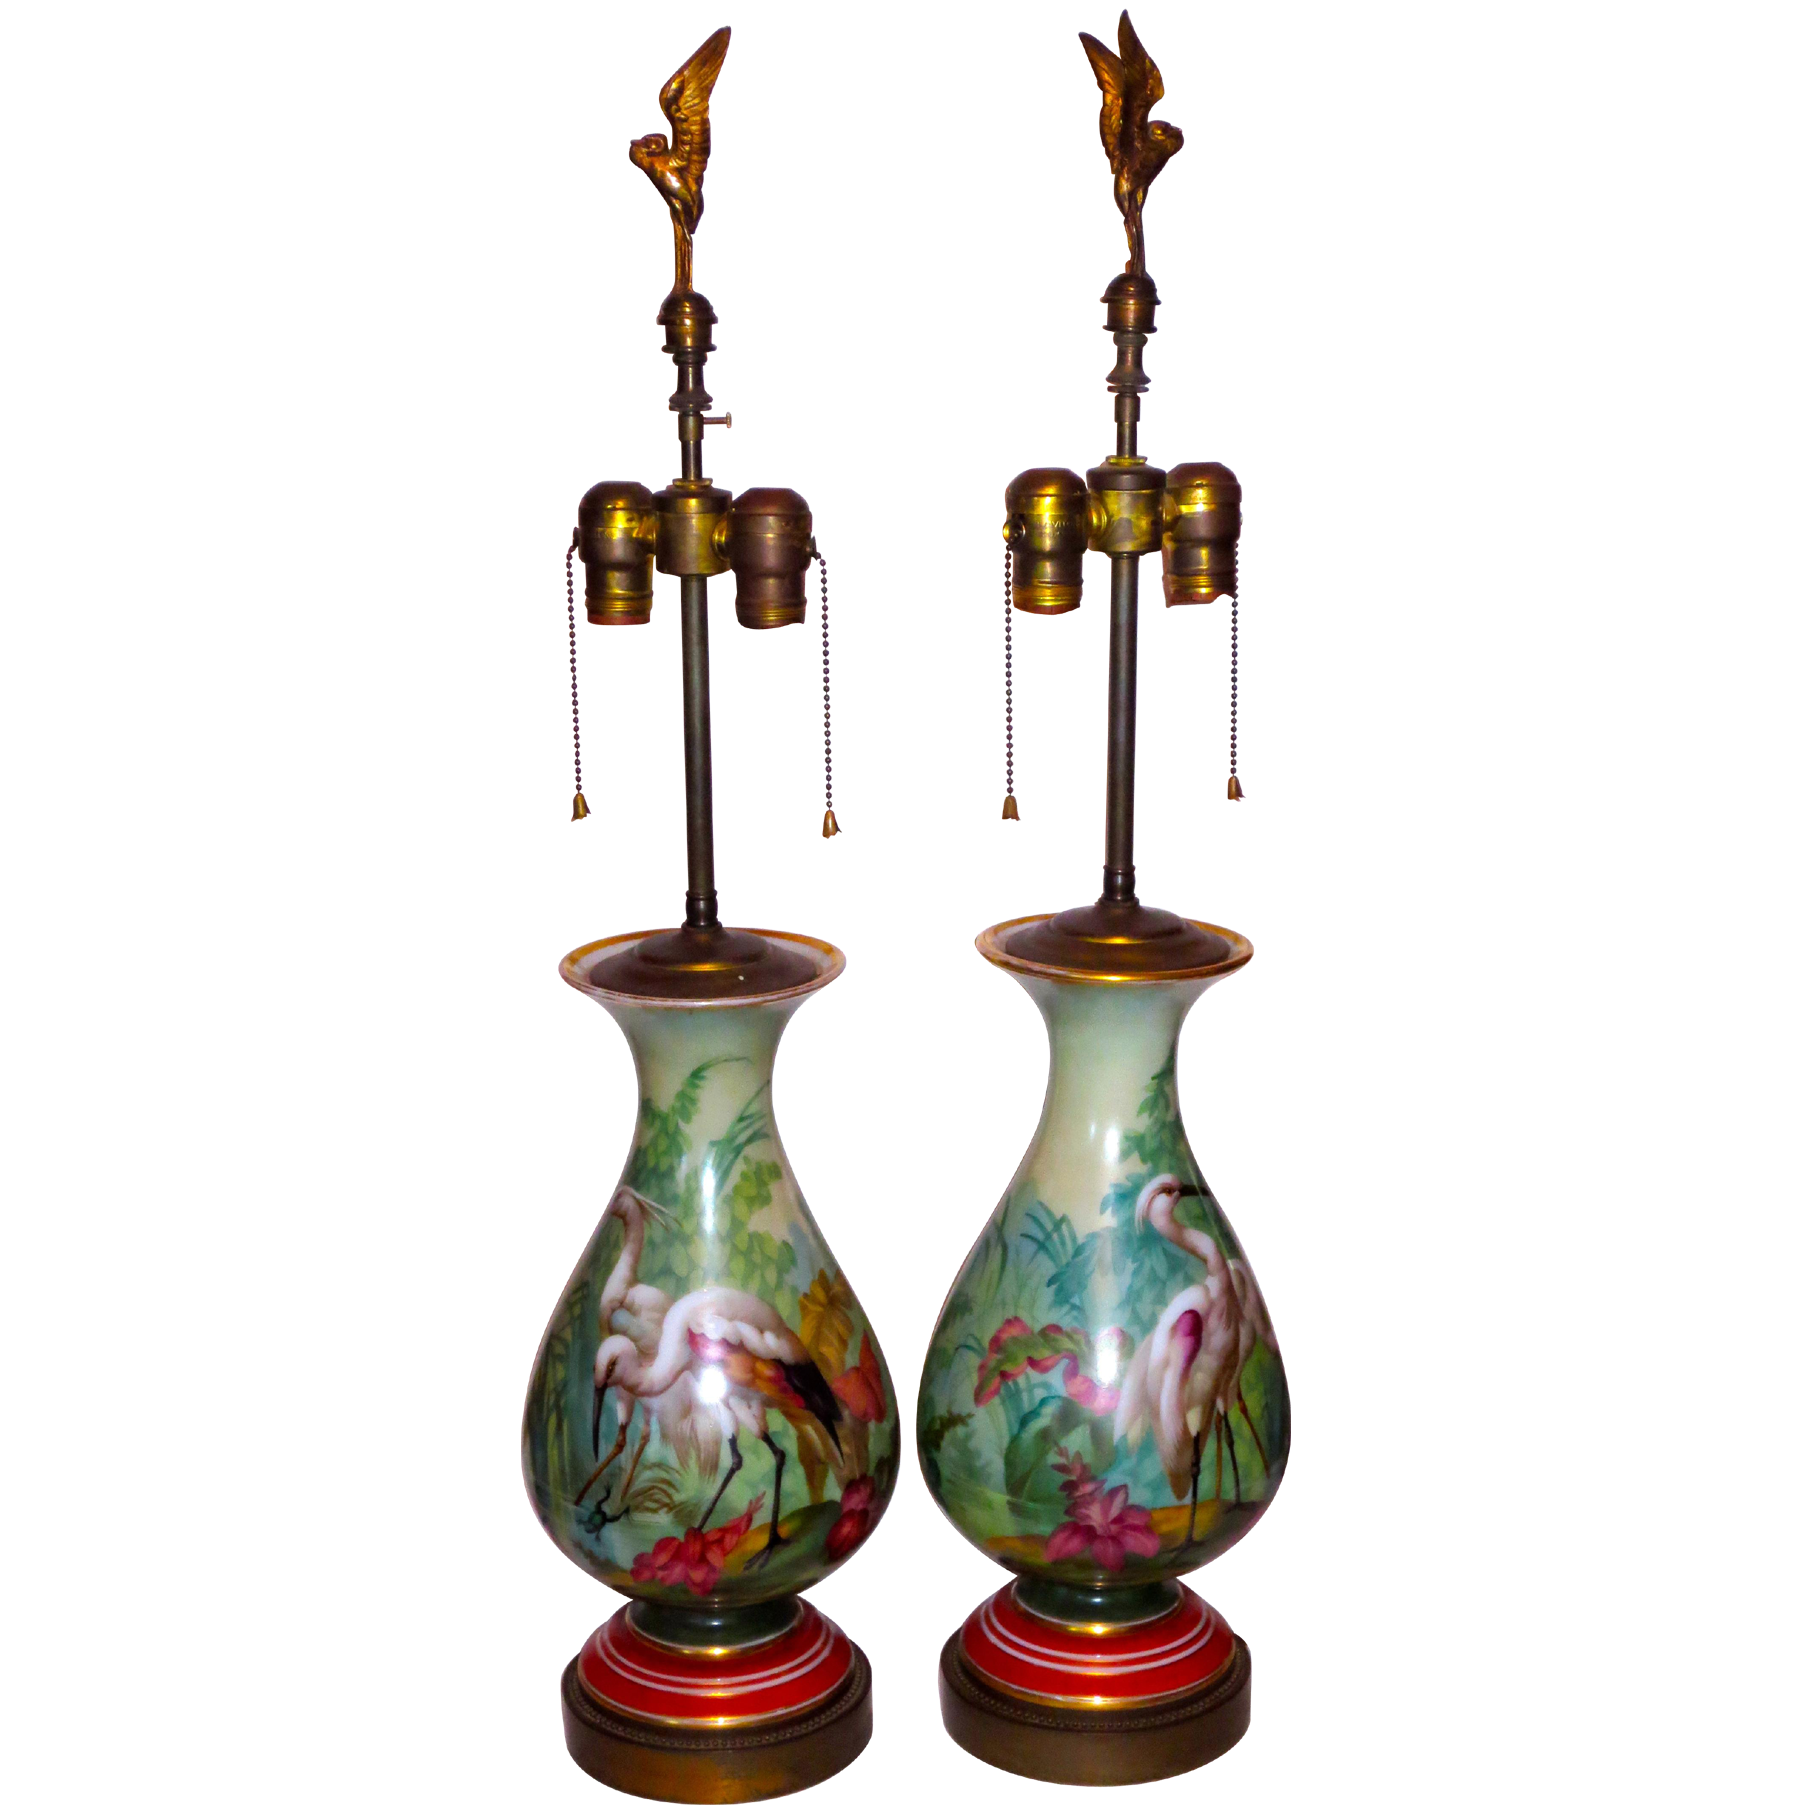 hp lamps birds frogs figural finials from lionsgate on ruby lane. Black Bedroom Furniture Sets. Home Design Ideas